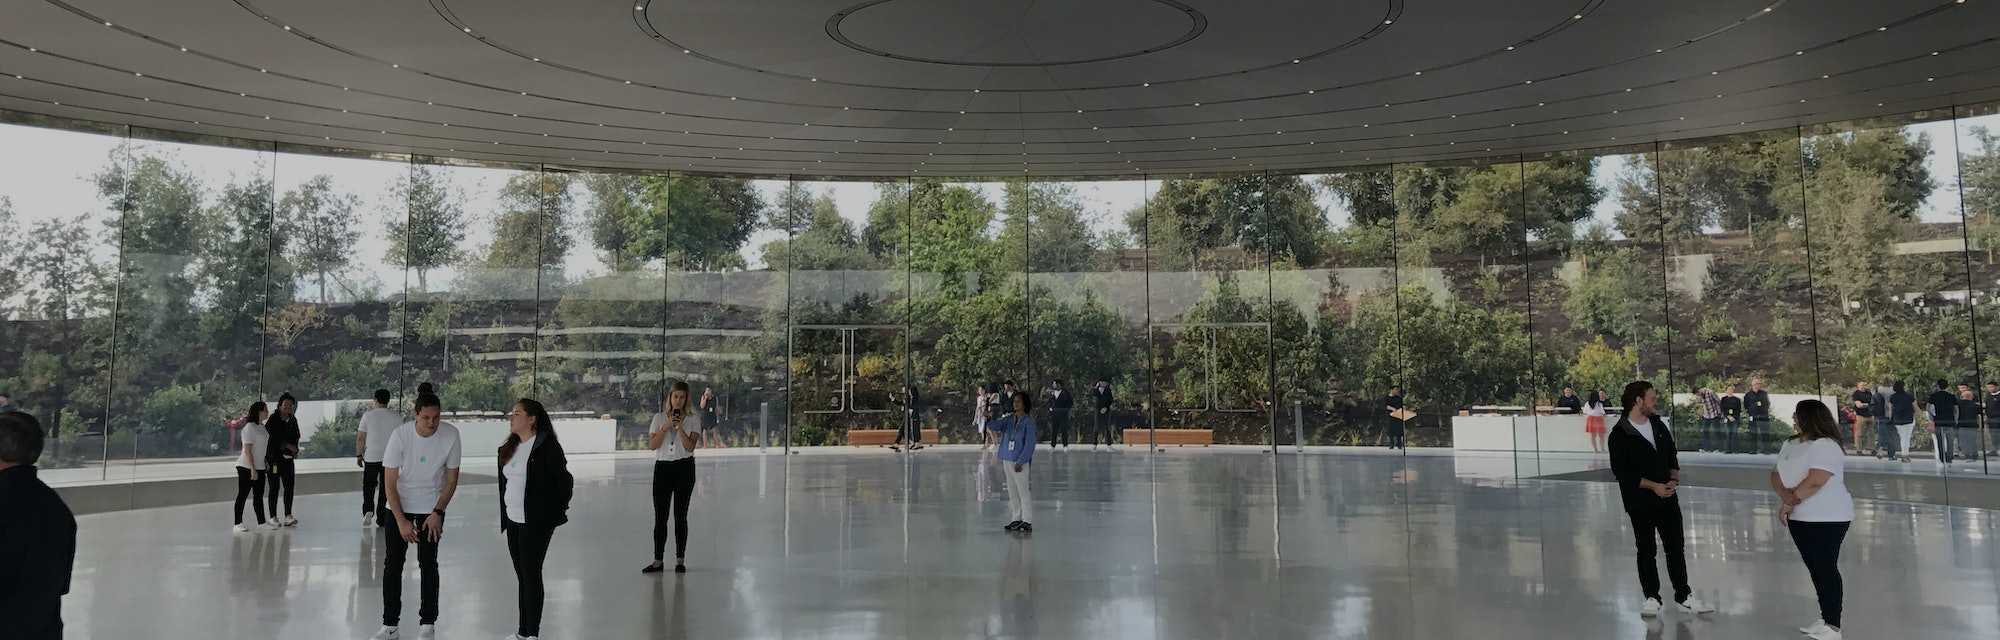 Tech journalists gather at the Steve Jobs Theater before the first-ever product launch at the new Ap...